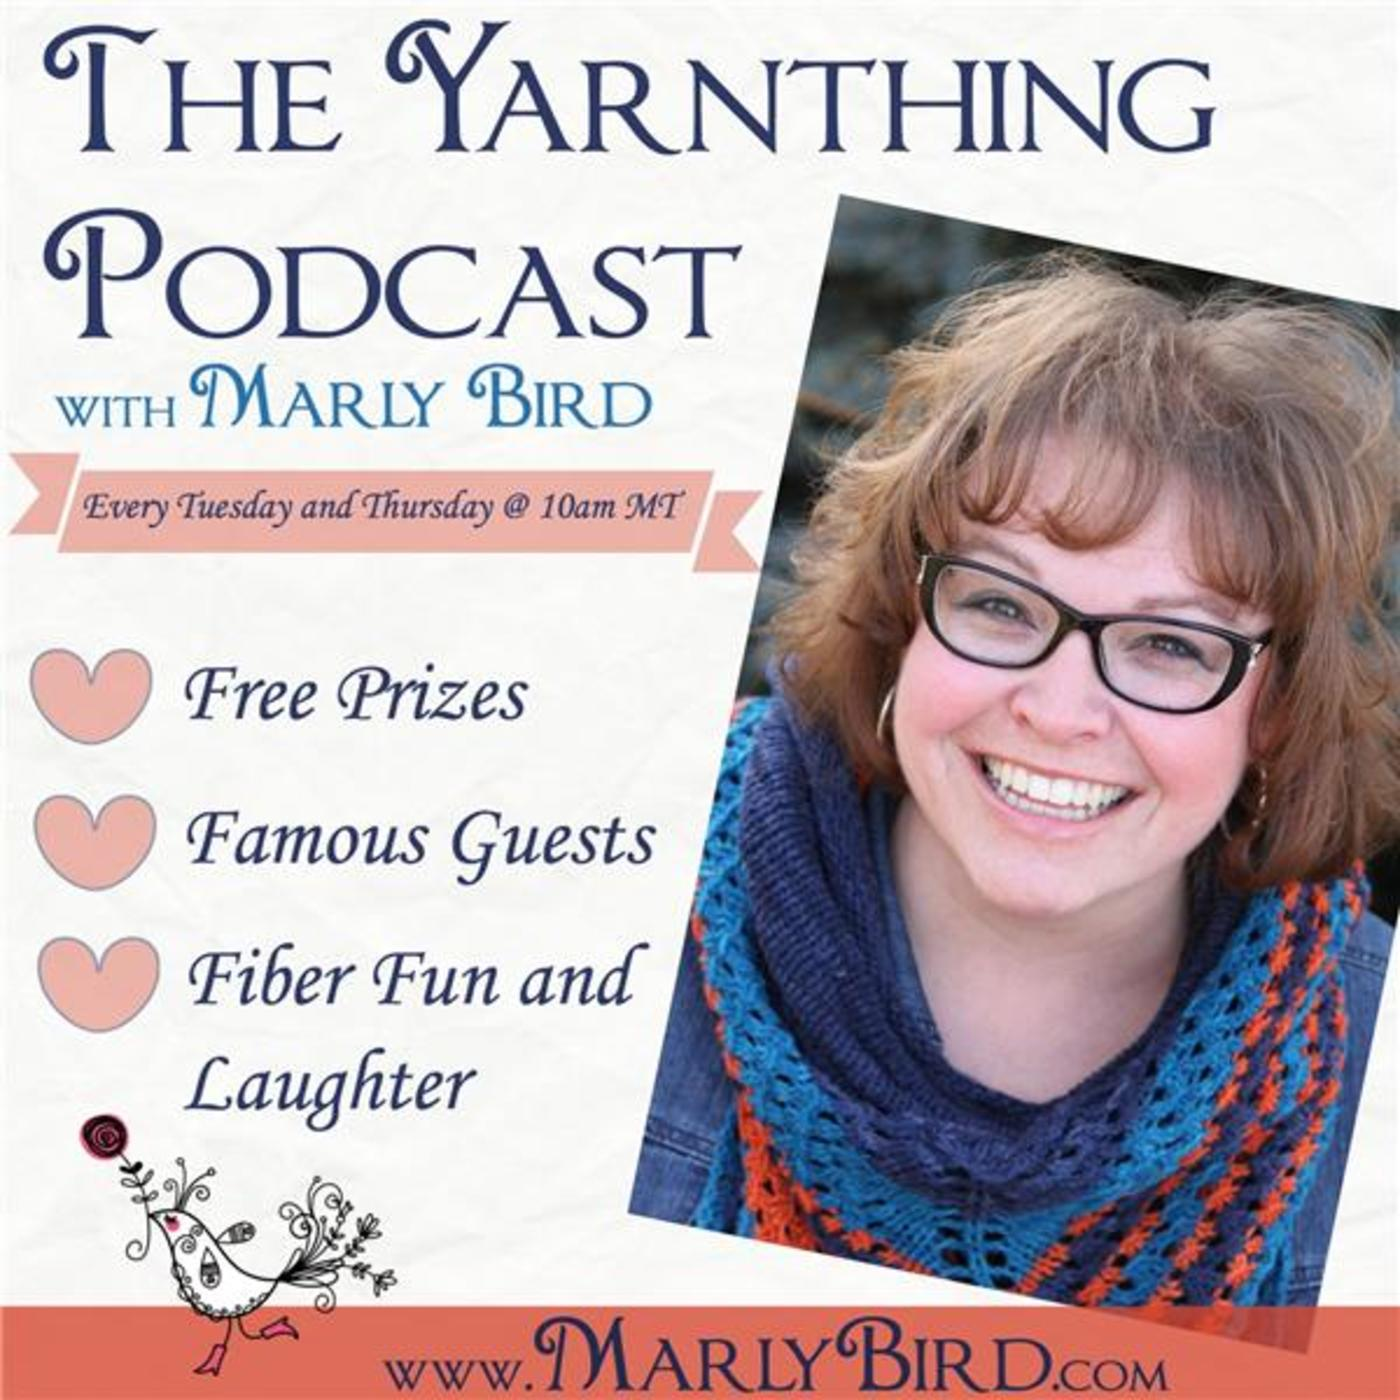 Yarn Thing with Marly Bird